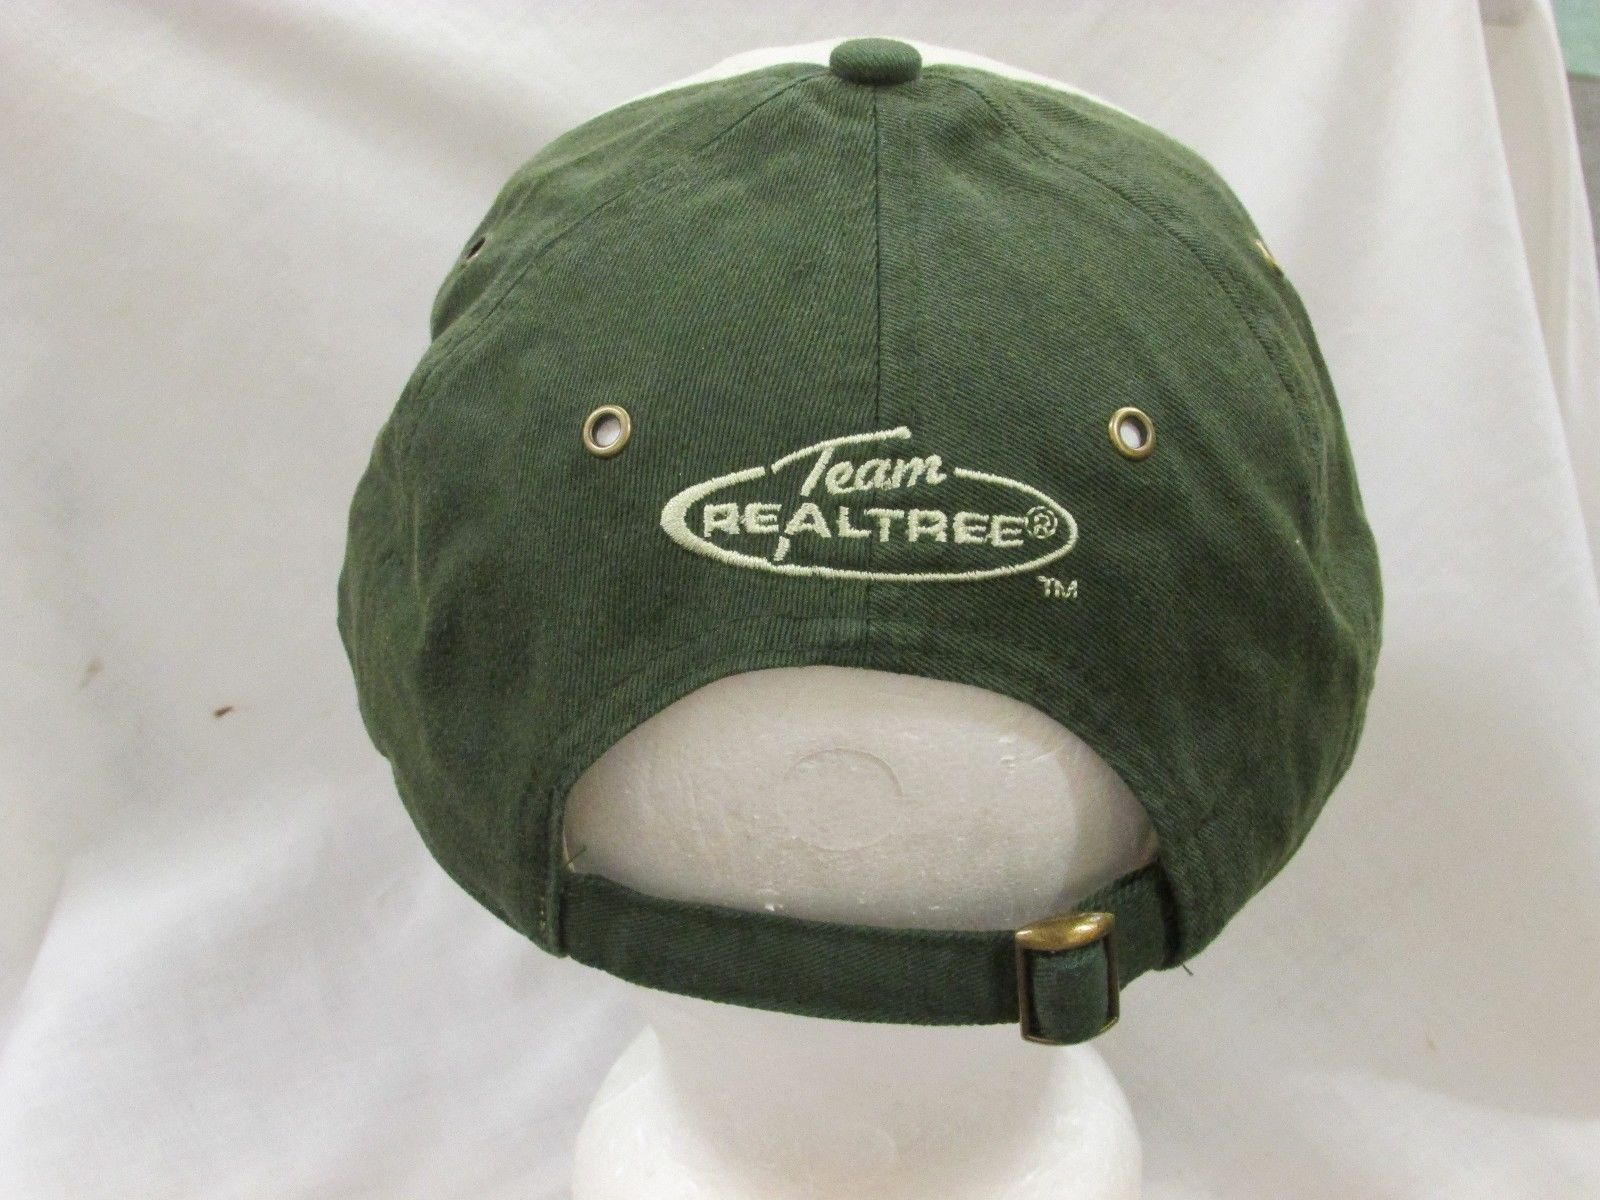 trucker hat baseball cap TEAM REALTREE SINCE 1986 new style cool rare patch